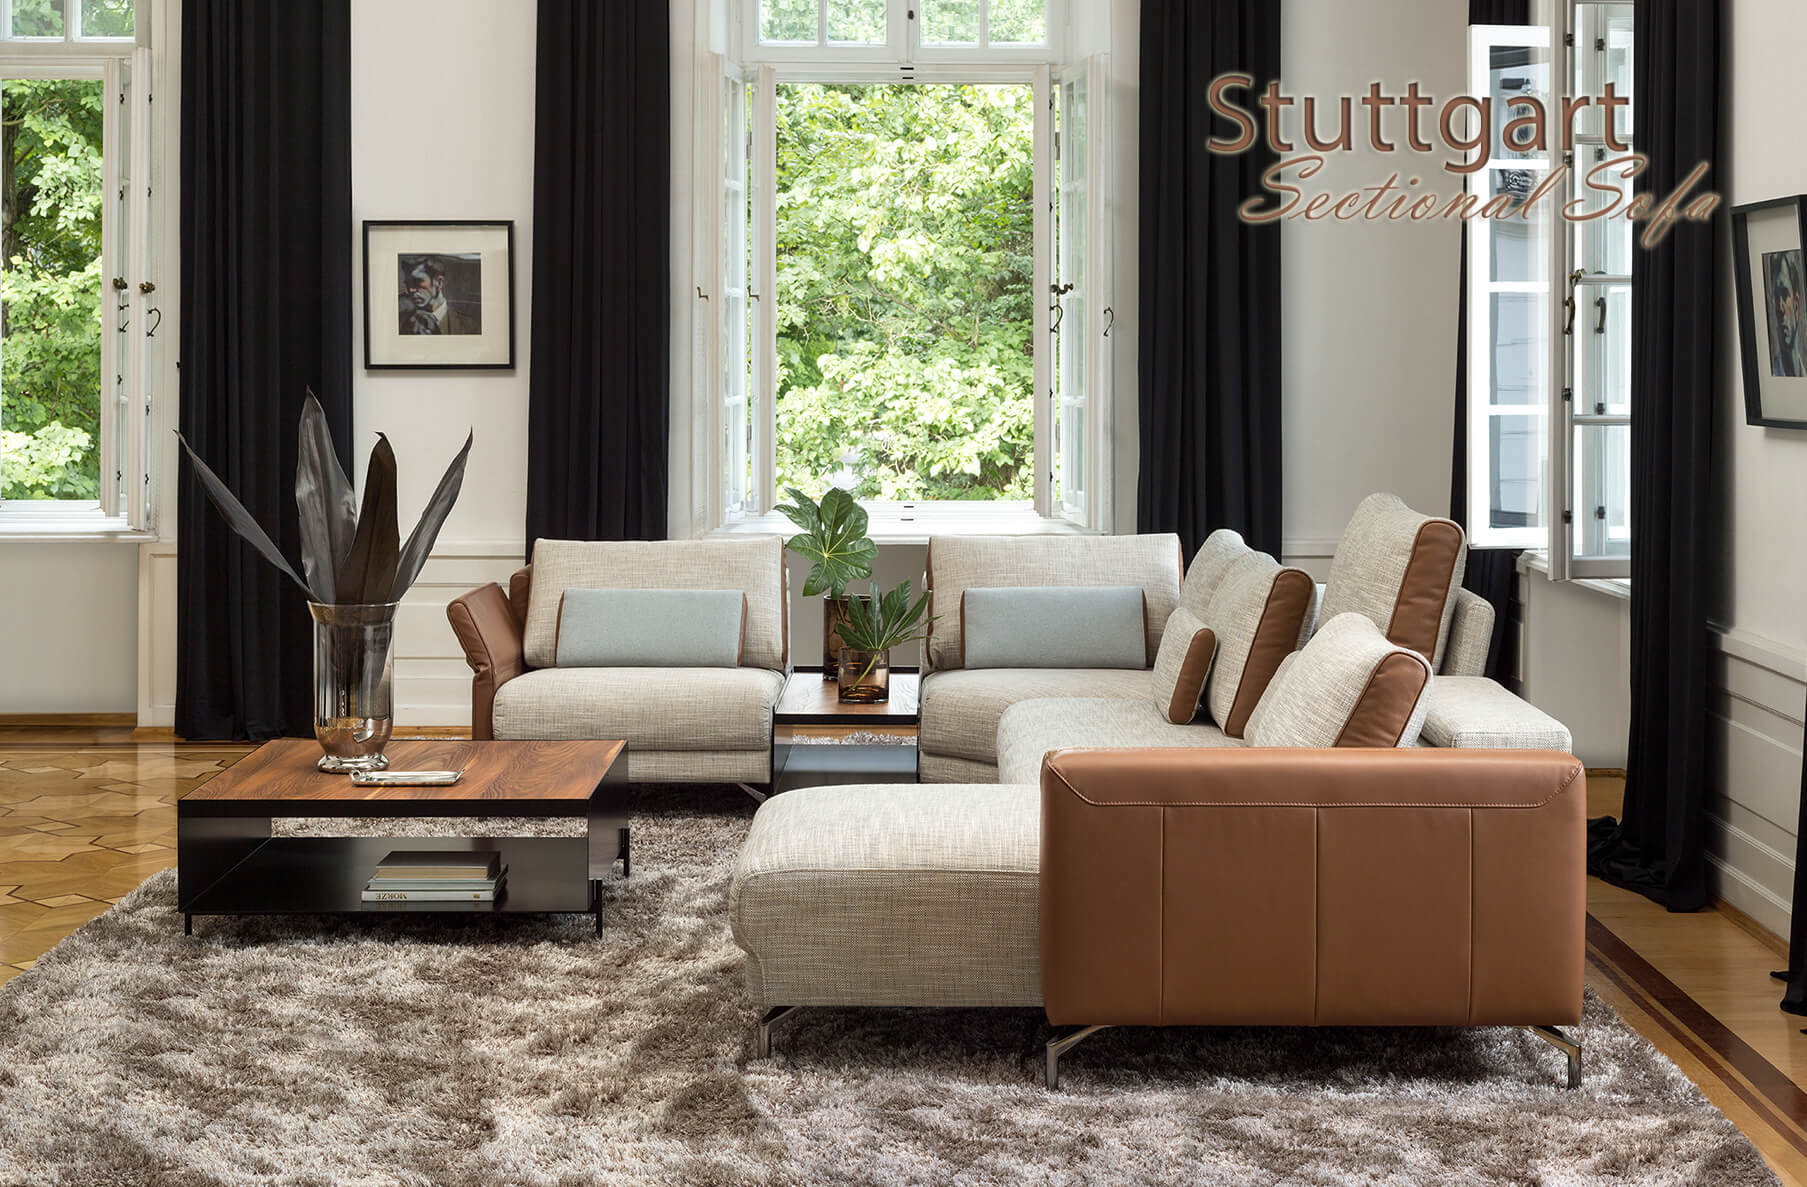 Stuttgart Sectional Sofa, Cheap